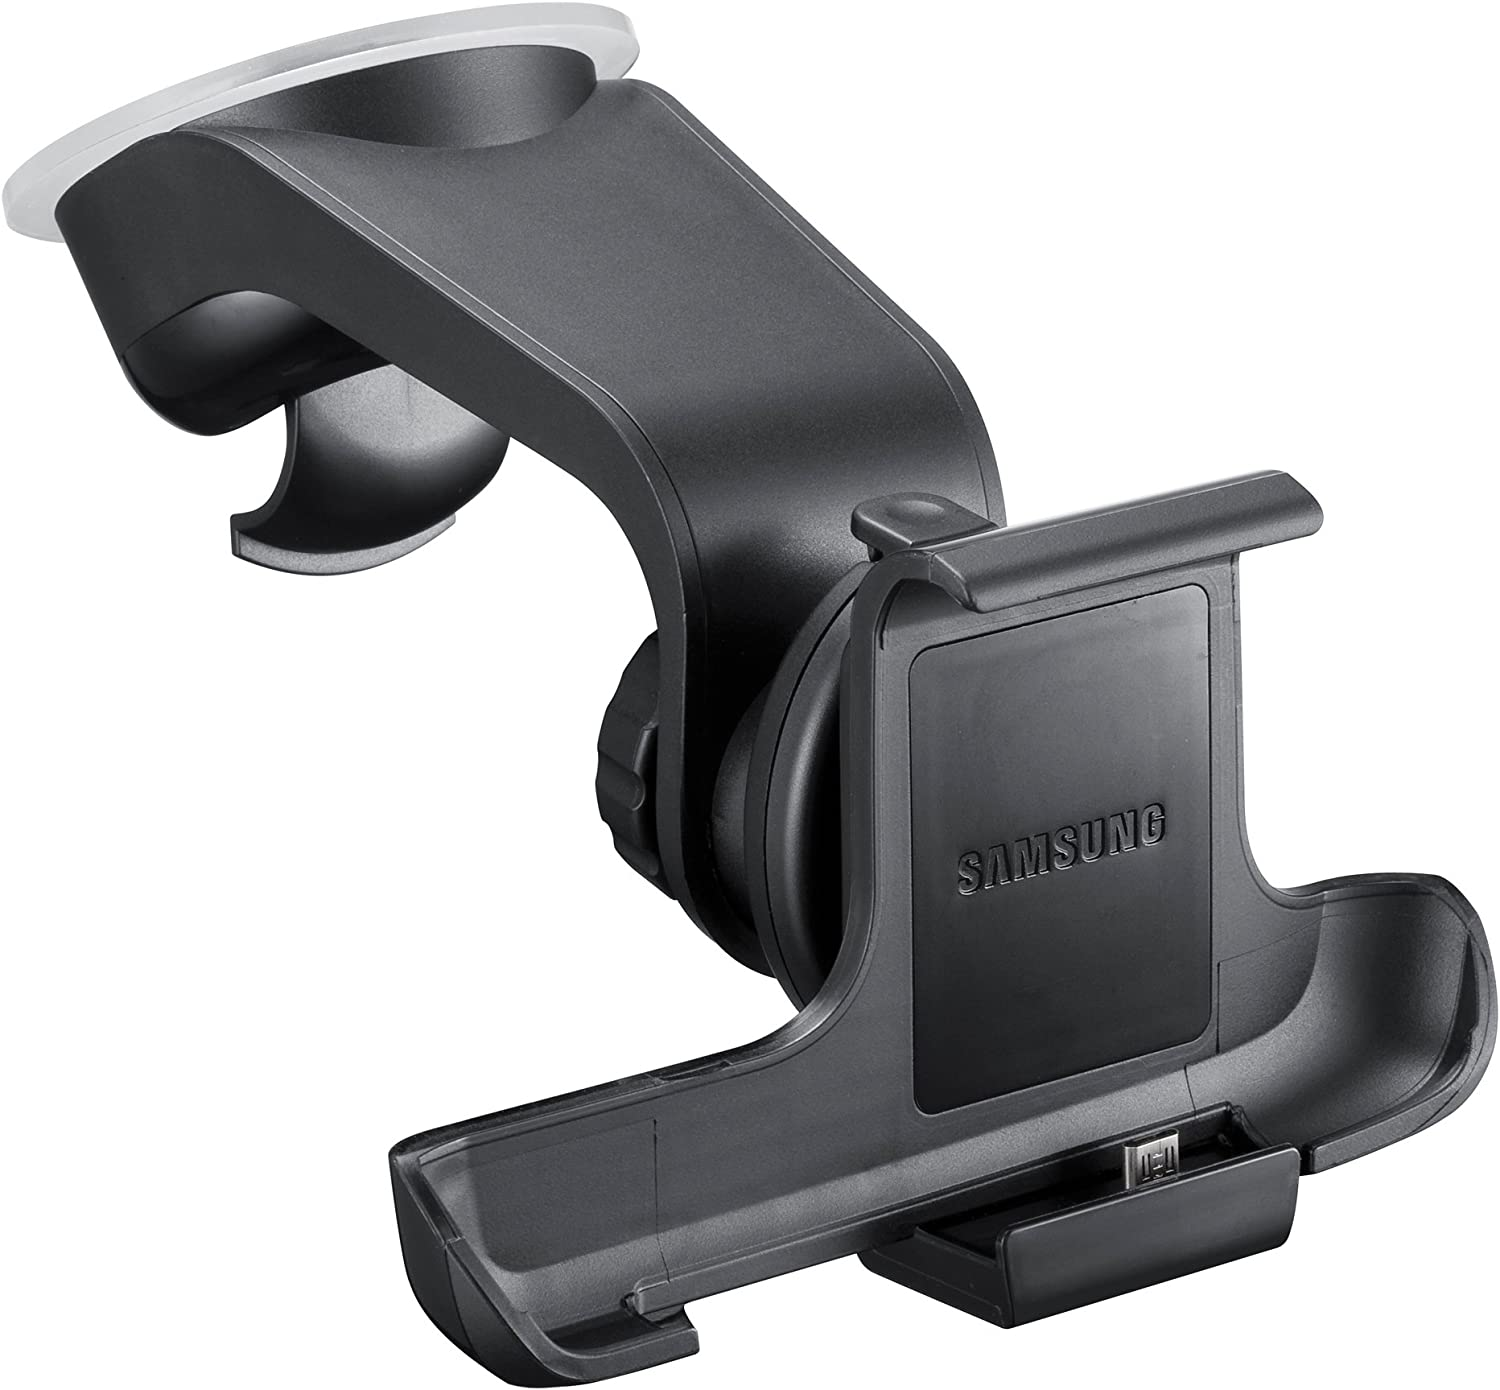 Samsung Galaxy S Navigation Vehicle Mount Compatible with Verizon DROID CHARGE SCH-I510